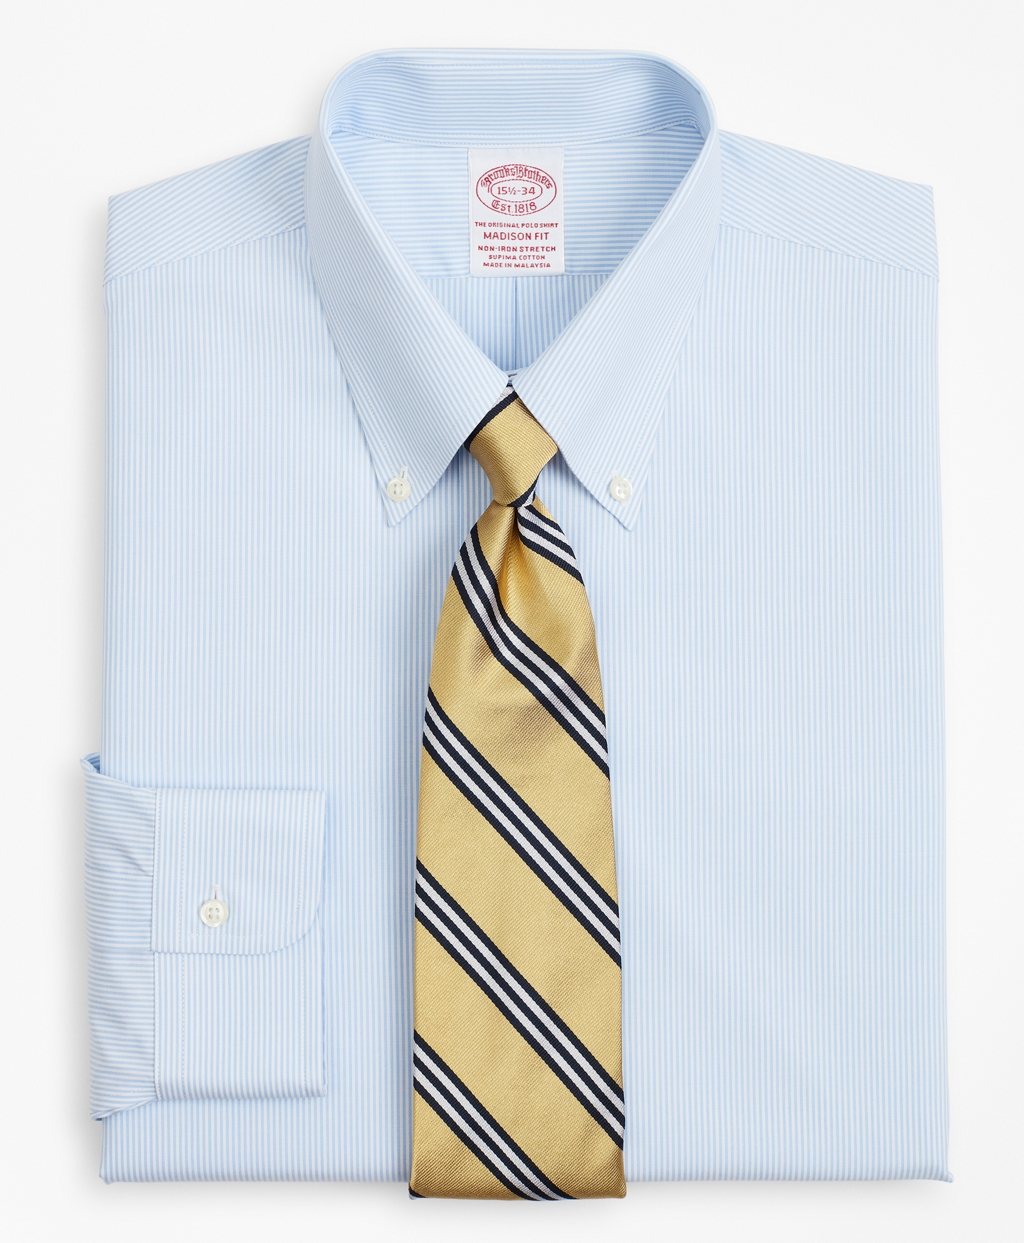 Brooksbrothers Stretch Madison Relaxed-Fit Dress Shirt, Non-Iron Poplin Button-Down Collar Fine Stripe